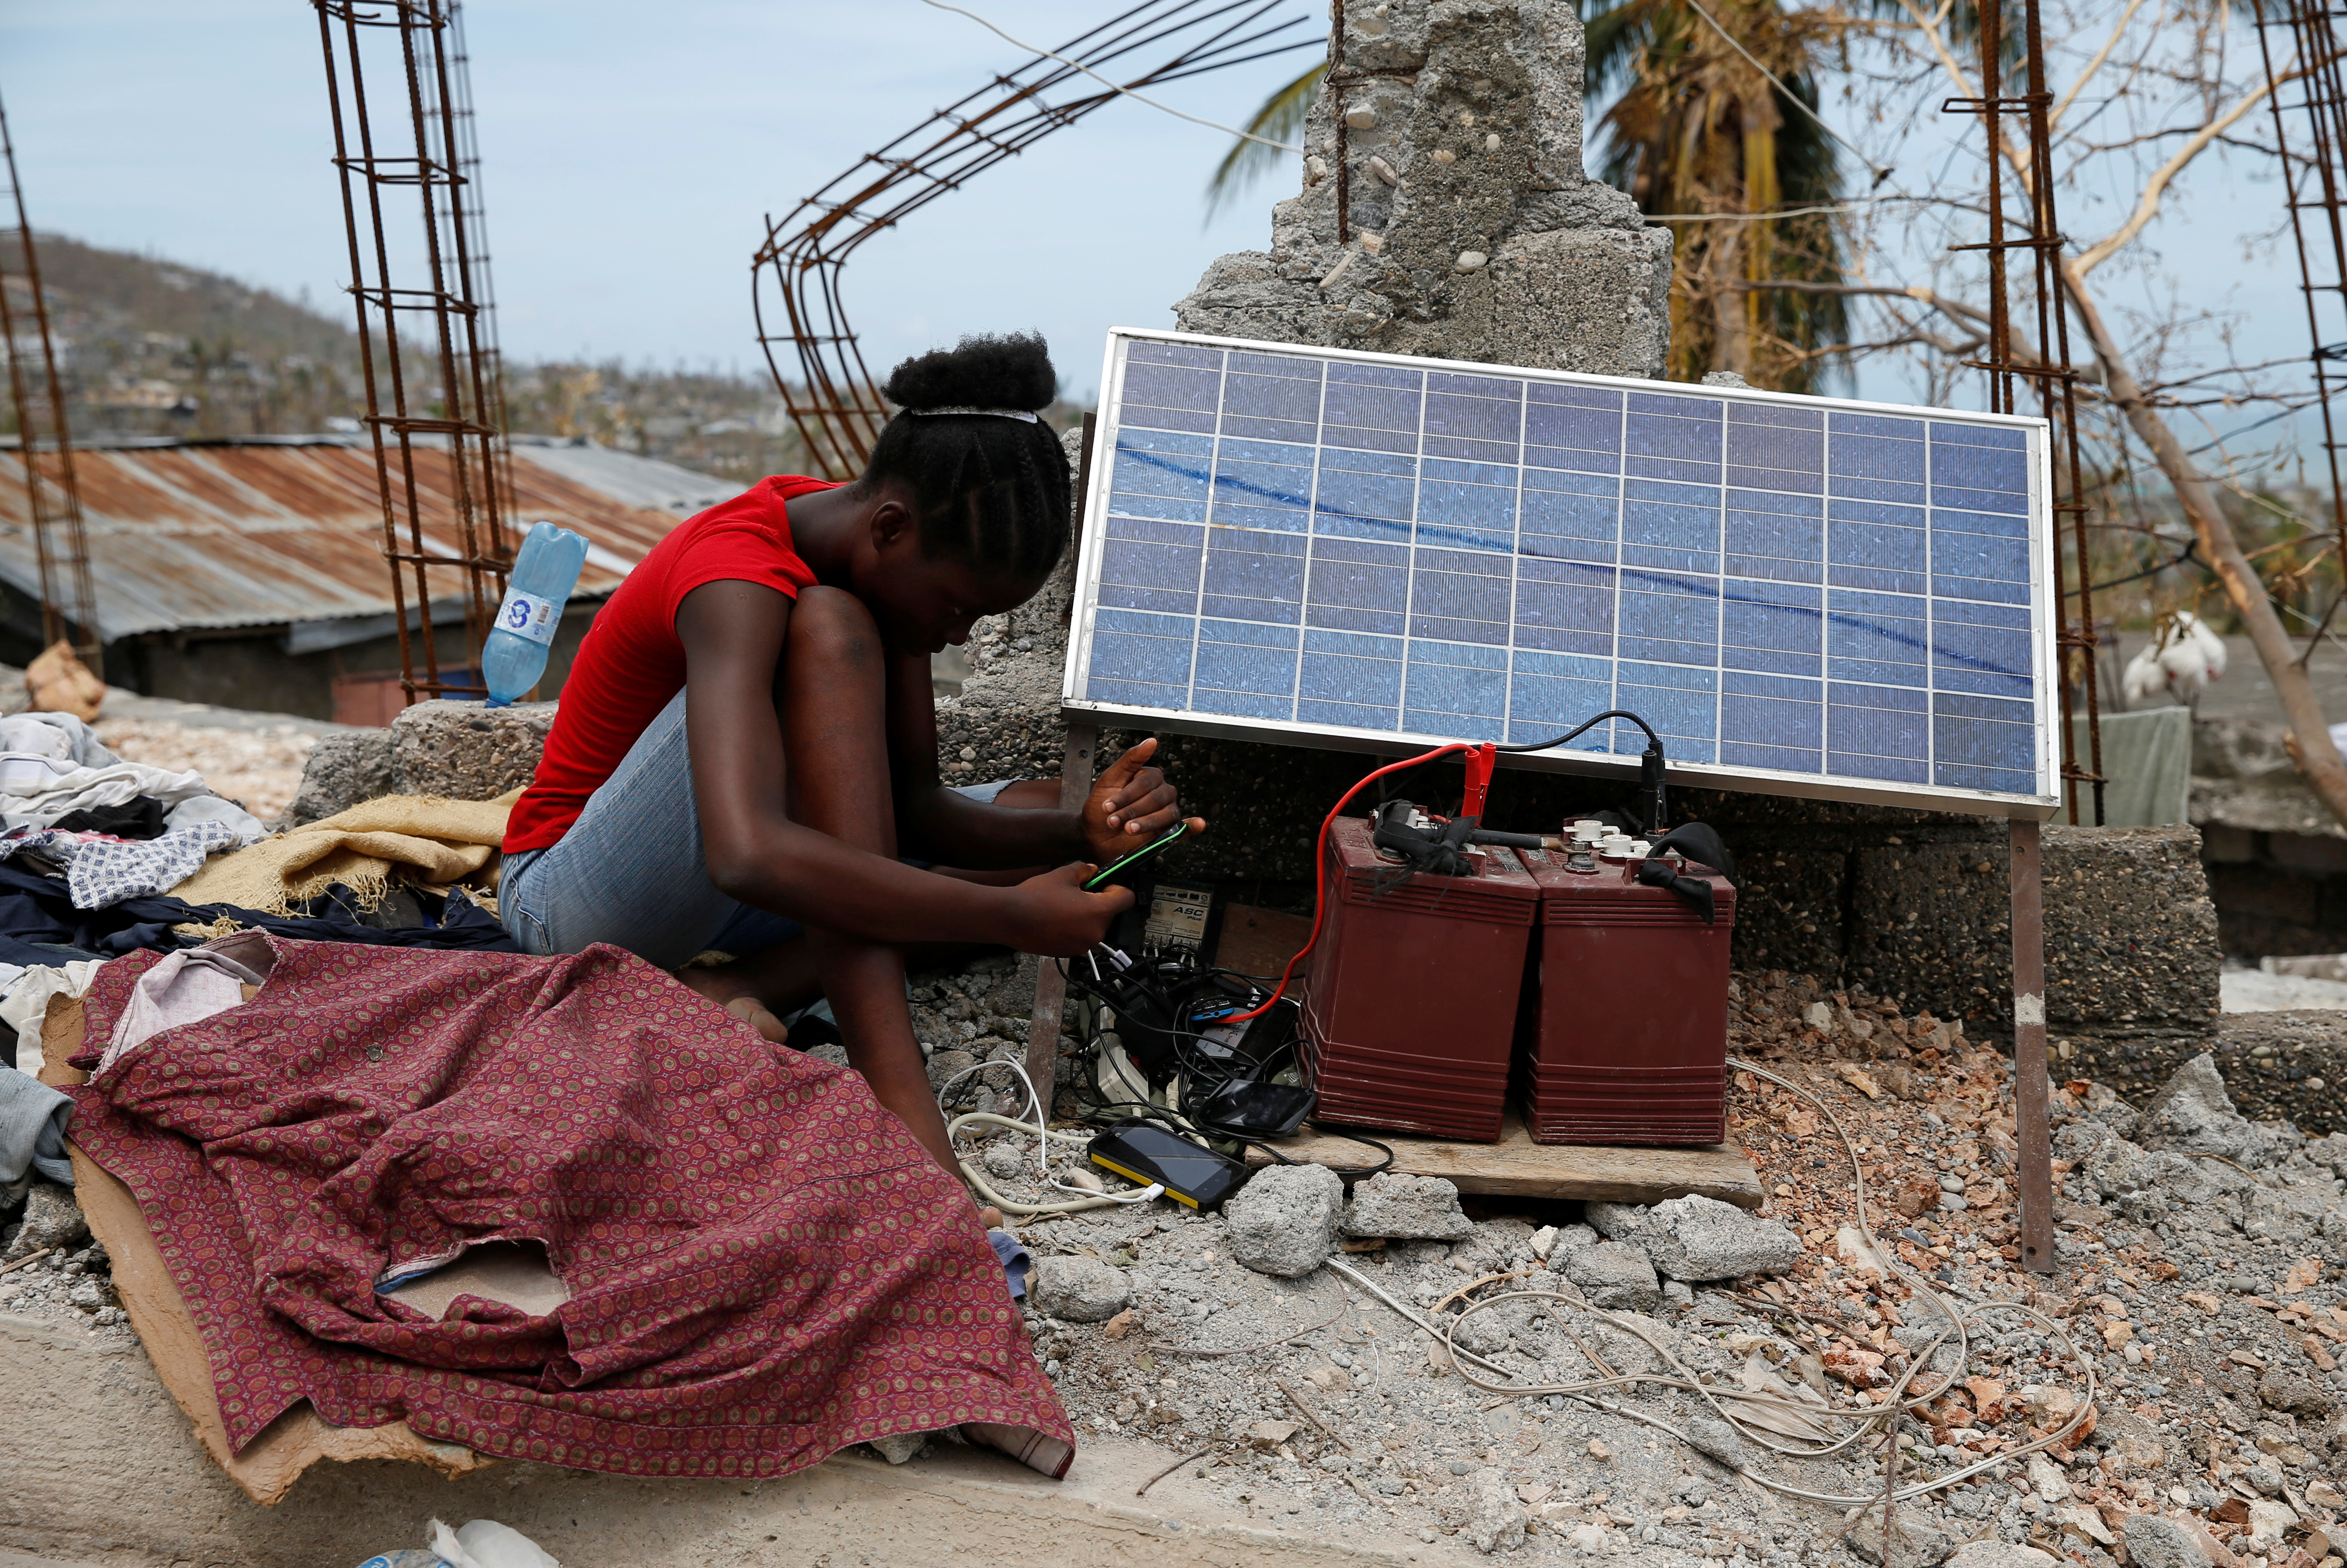 A woman uses solar panels to recharge her mobile phone in Jeremie, Haiti. Photo by Carlos Garcia Rawlins/Reuters